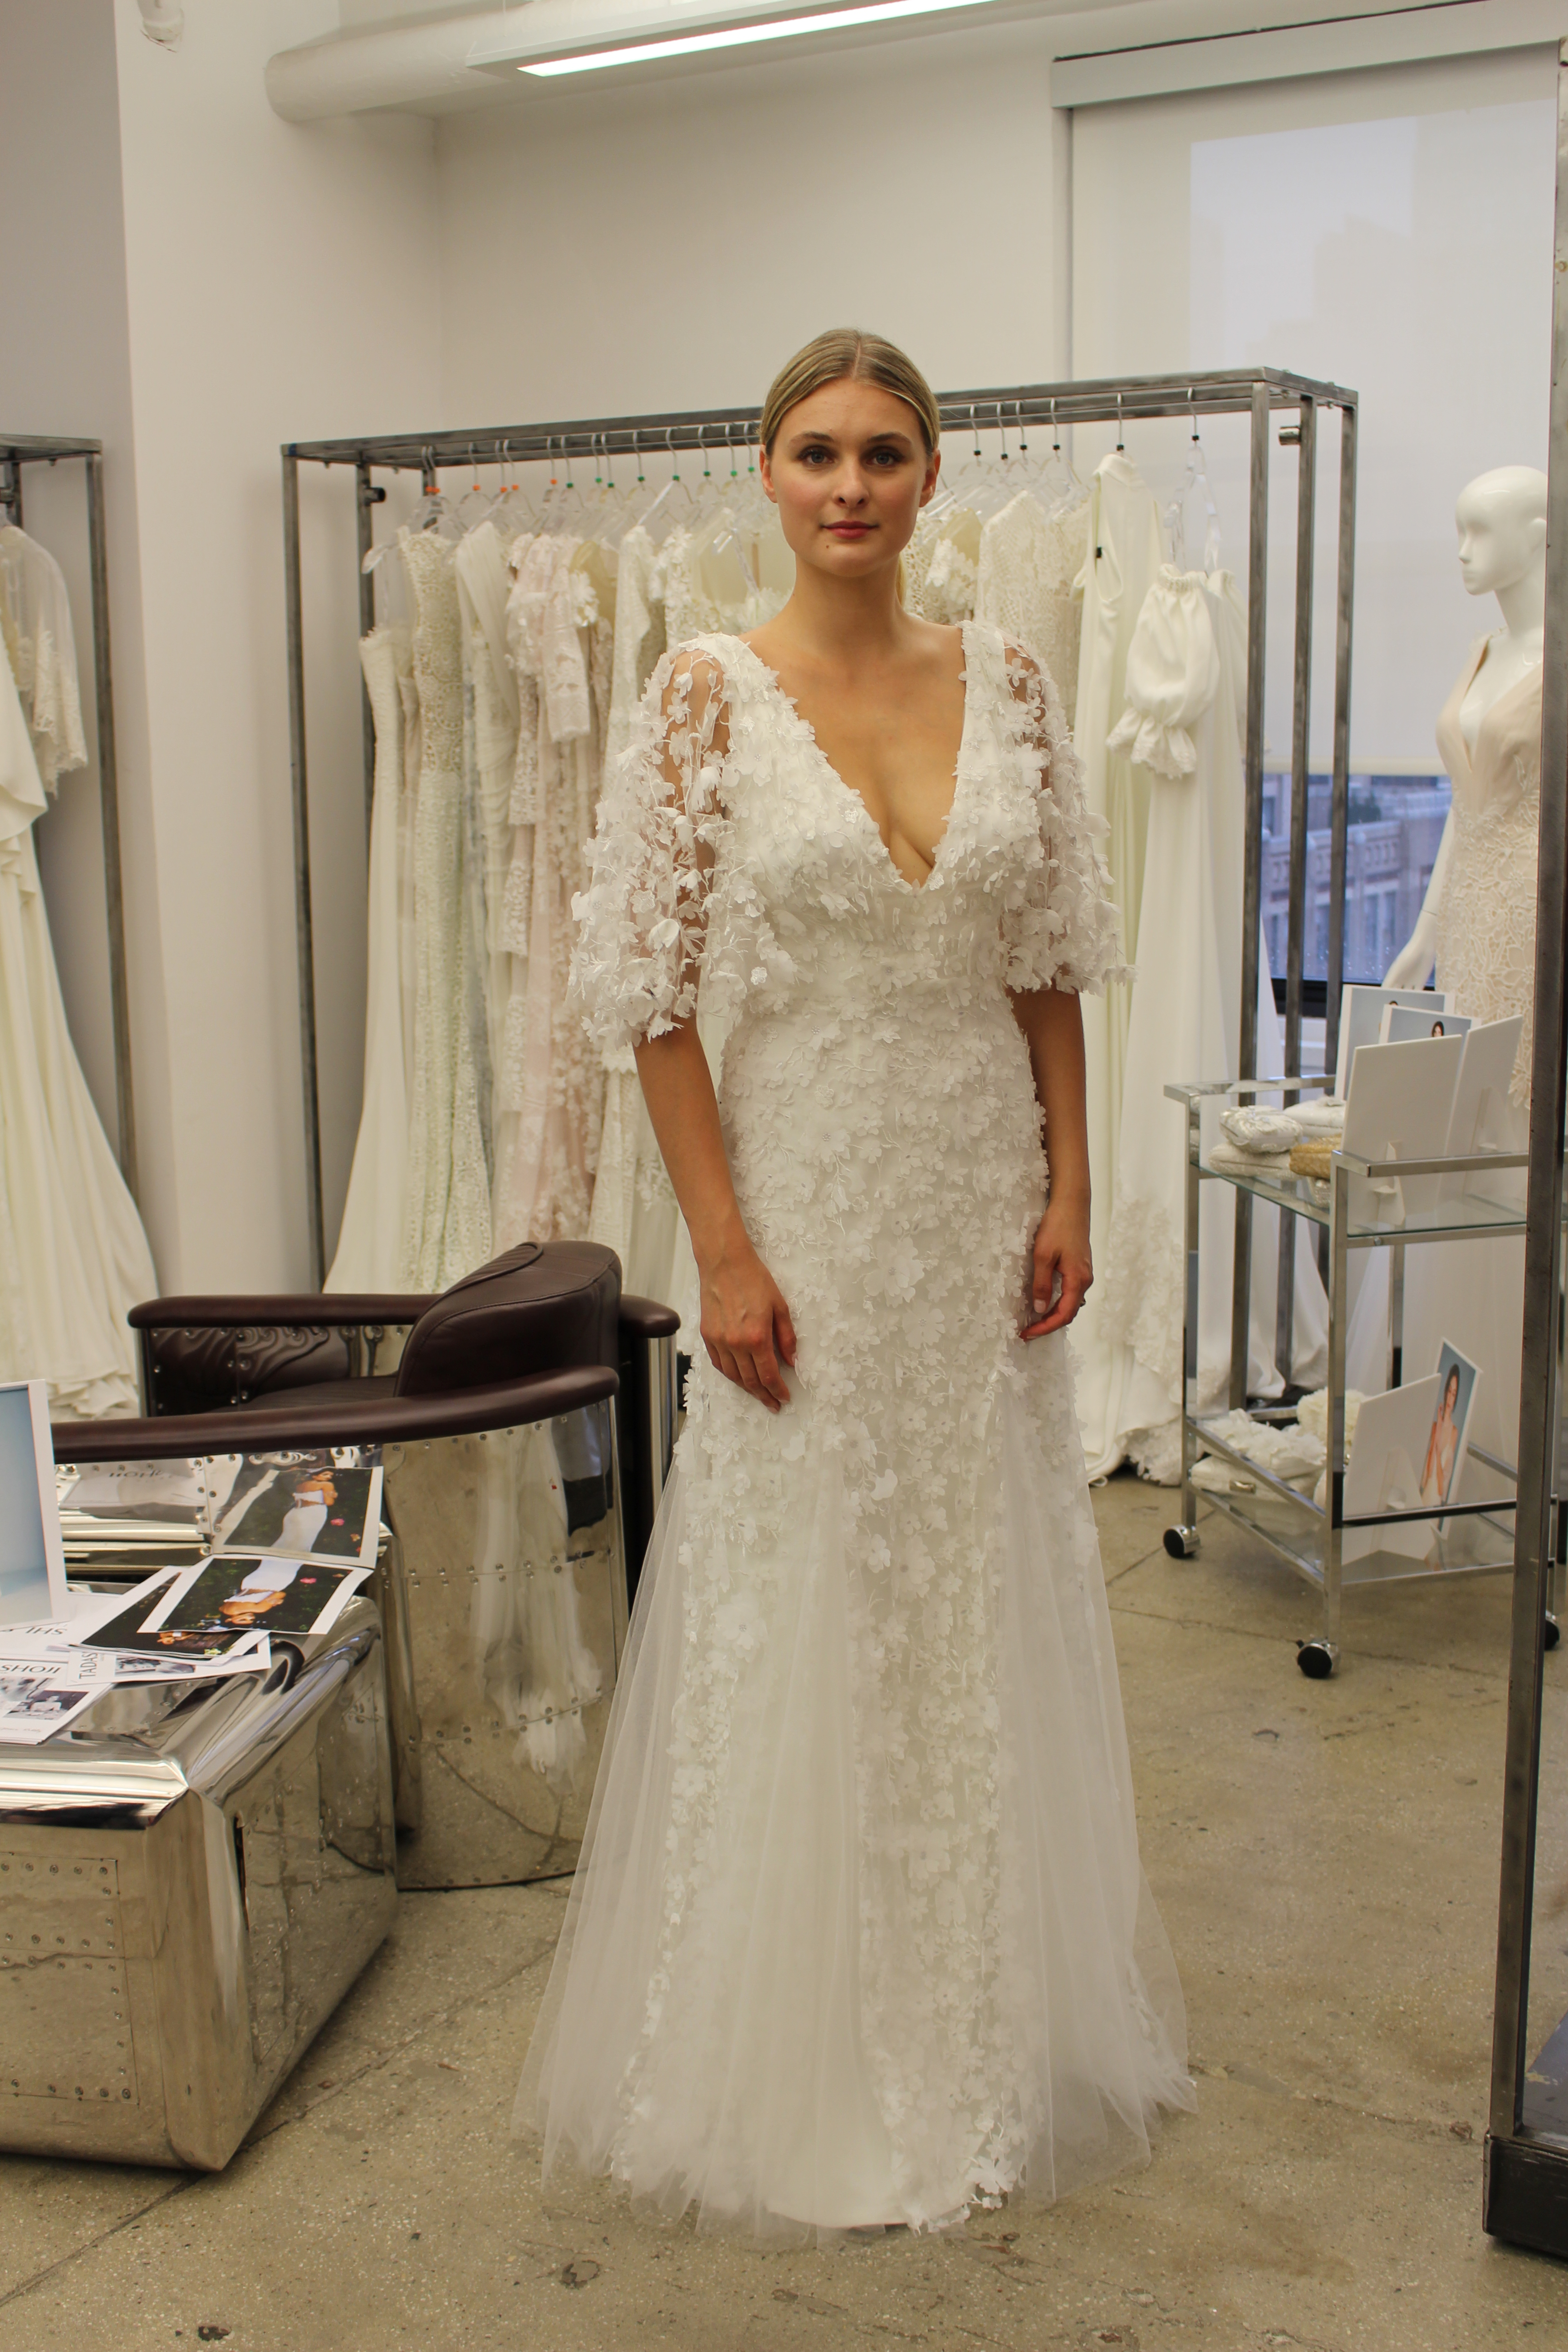 Keywords: Mother Of The Bride Dress, Honolulu, Hawaii, Tadashi Shoji, Tadashi  Shoji Wedding Dress, Boho Wedding Dress, Wedding Dress Under $1000, ...